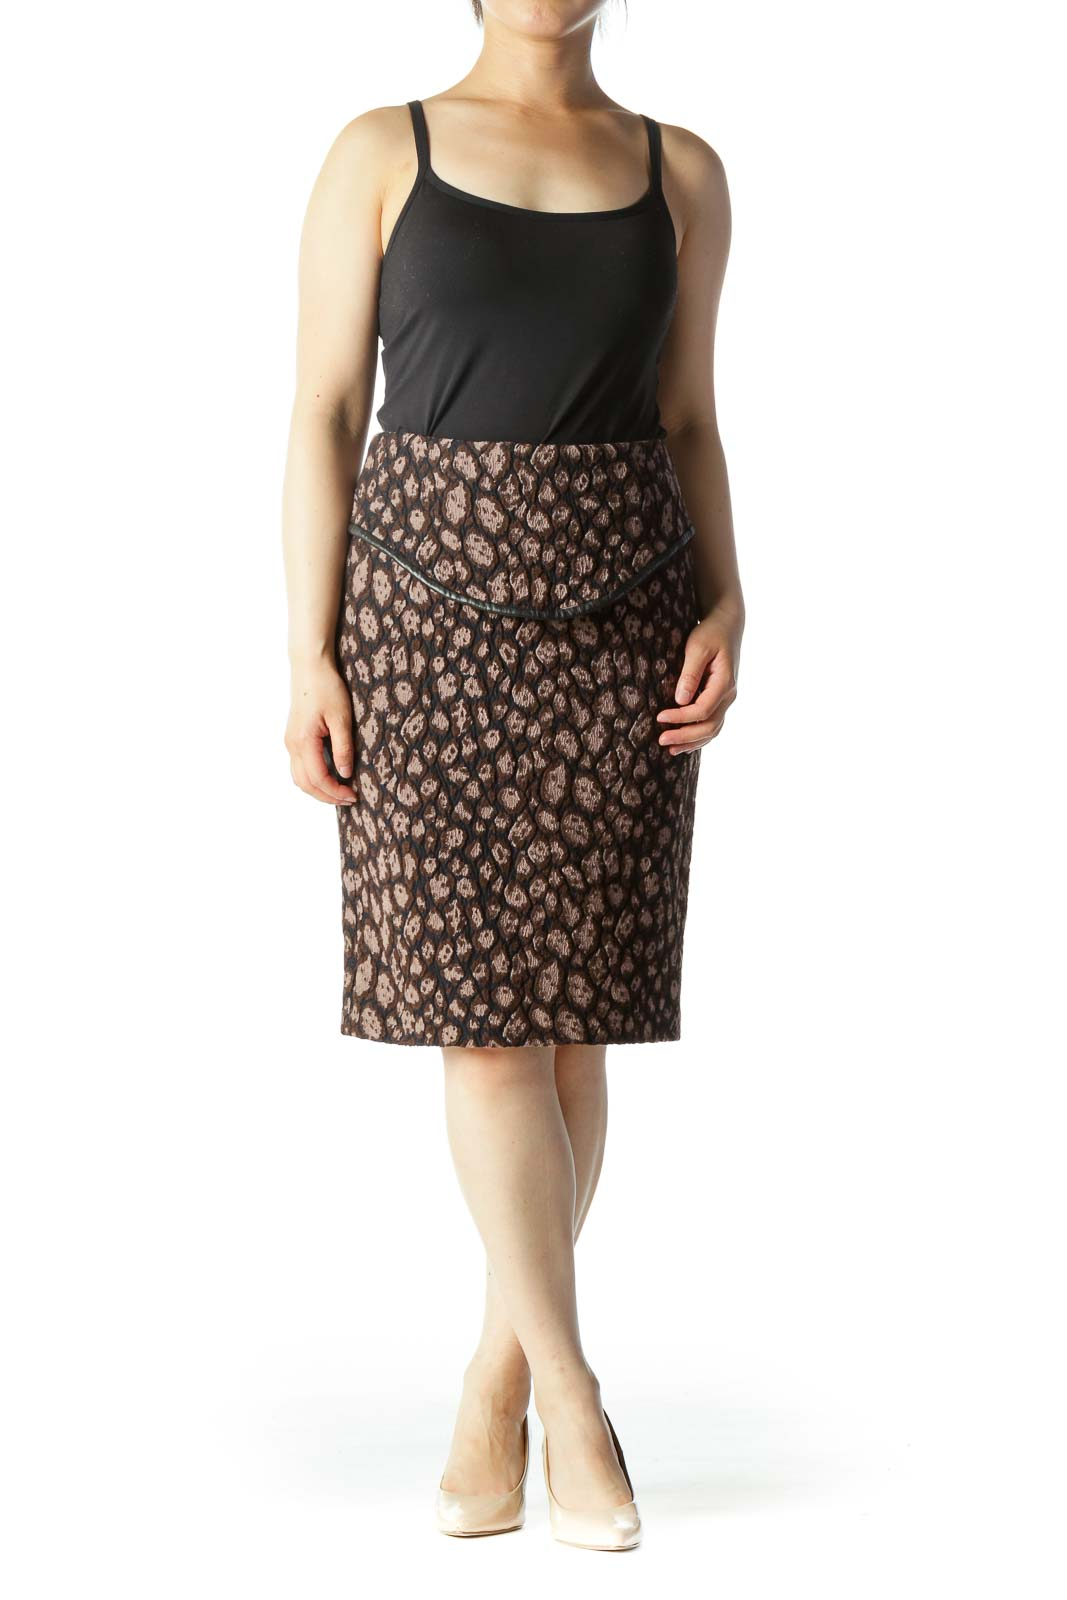 Brown Black & Beige Brocade Printed Pencil Skirt With Leather Combo